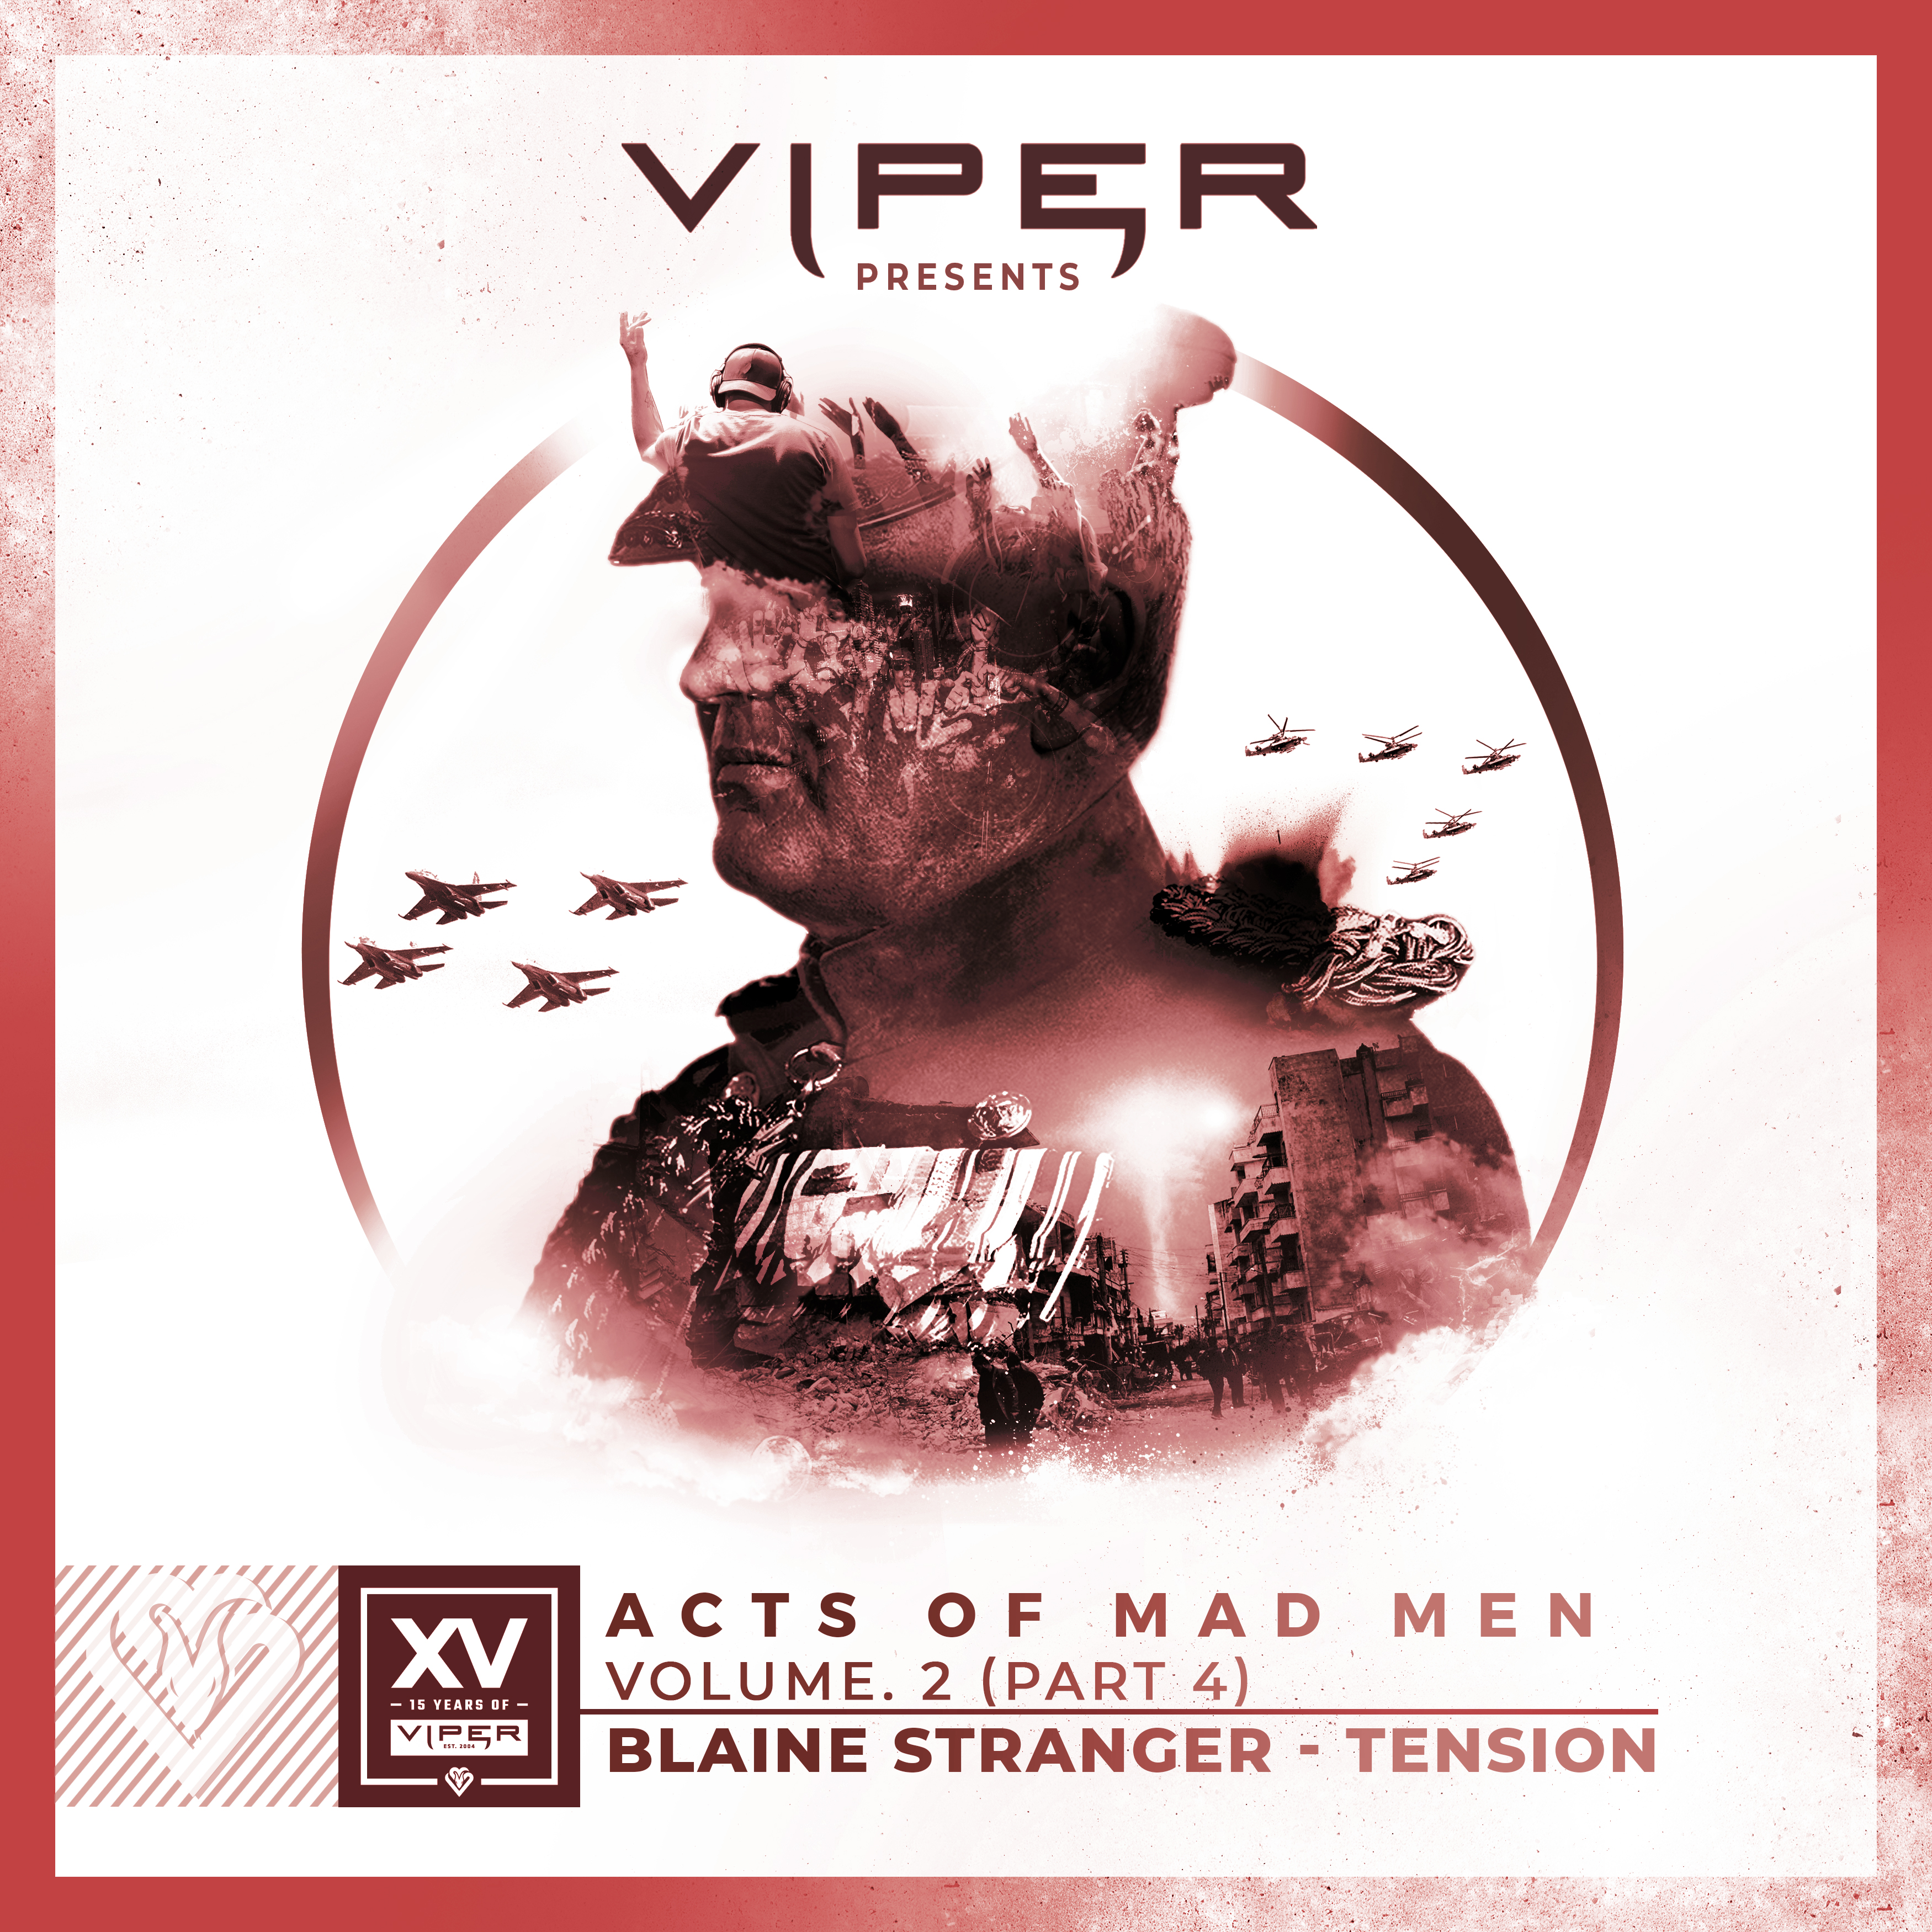 Blaine Stranger - Tension (Acts of Mad Men Vol. 2 Part 4)